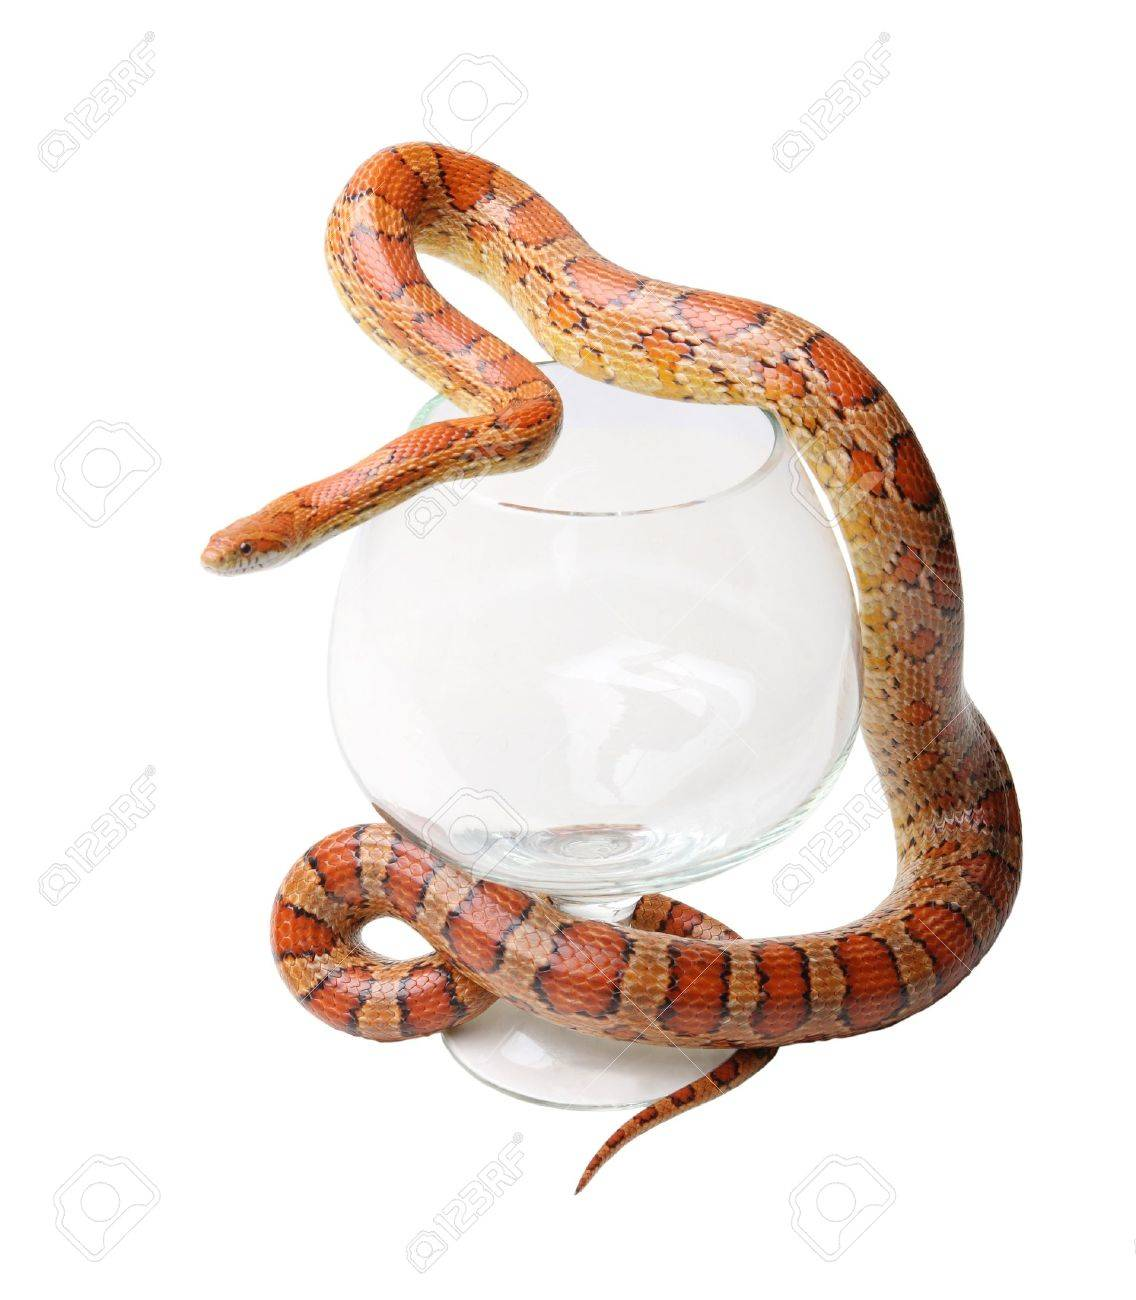 Corn snake in a glass on the white background (Elaphe guttata) Stock Photo - 8246846